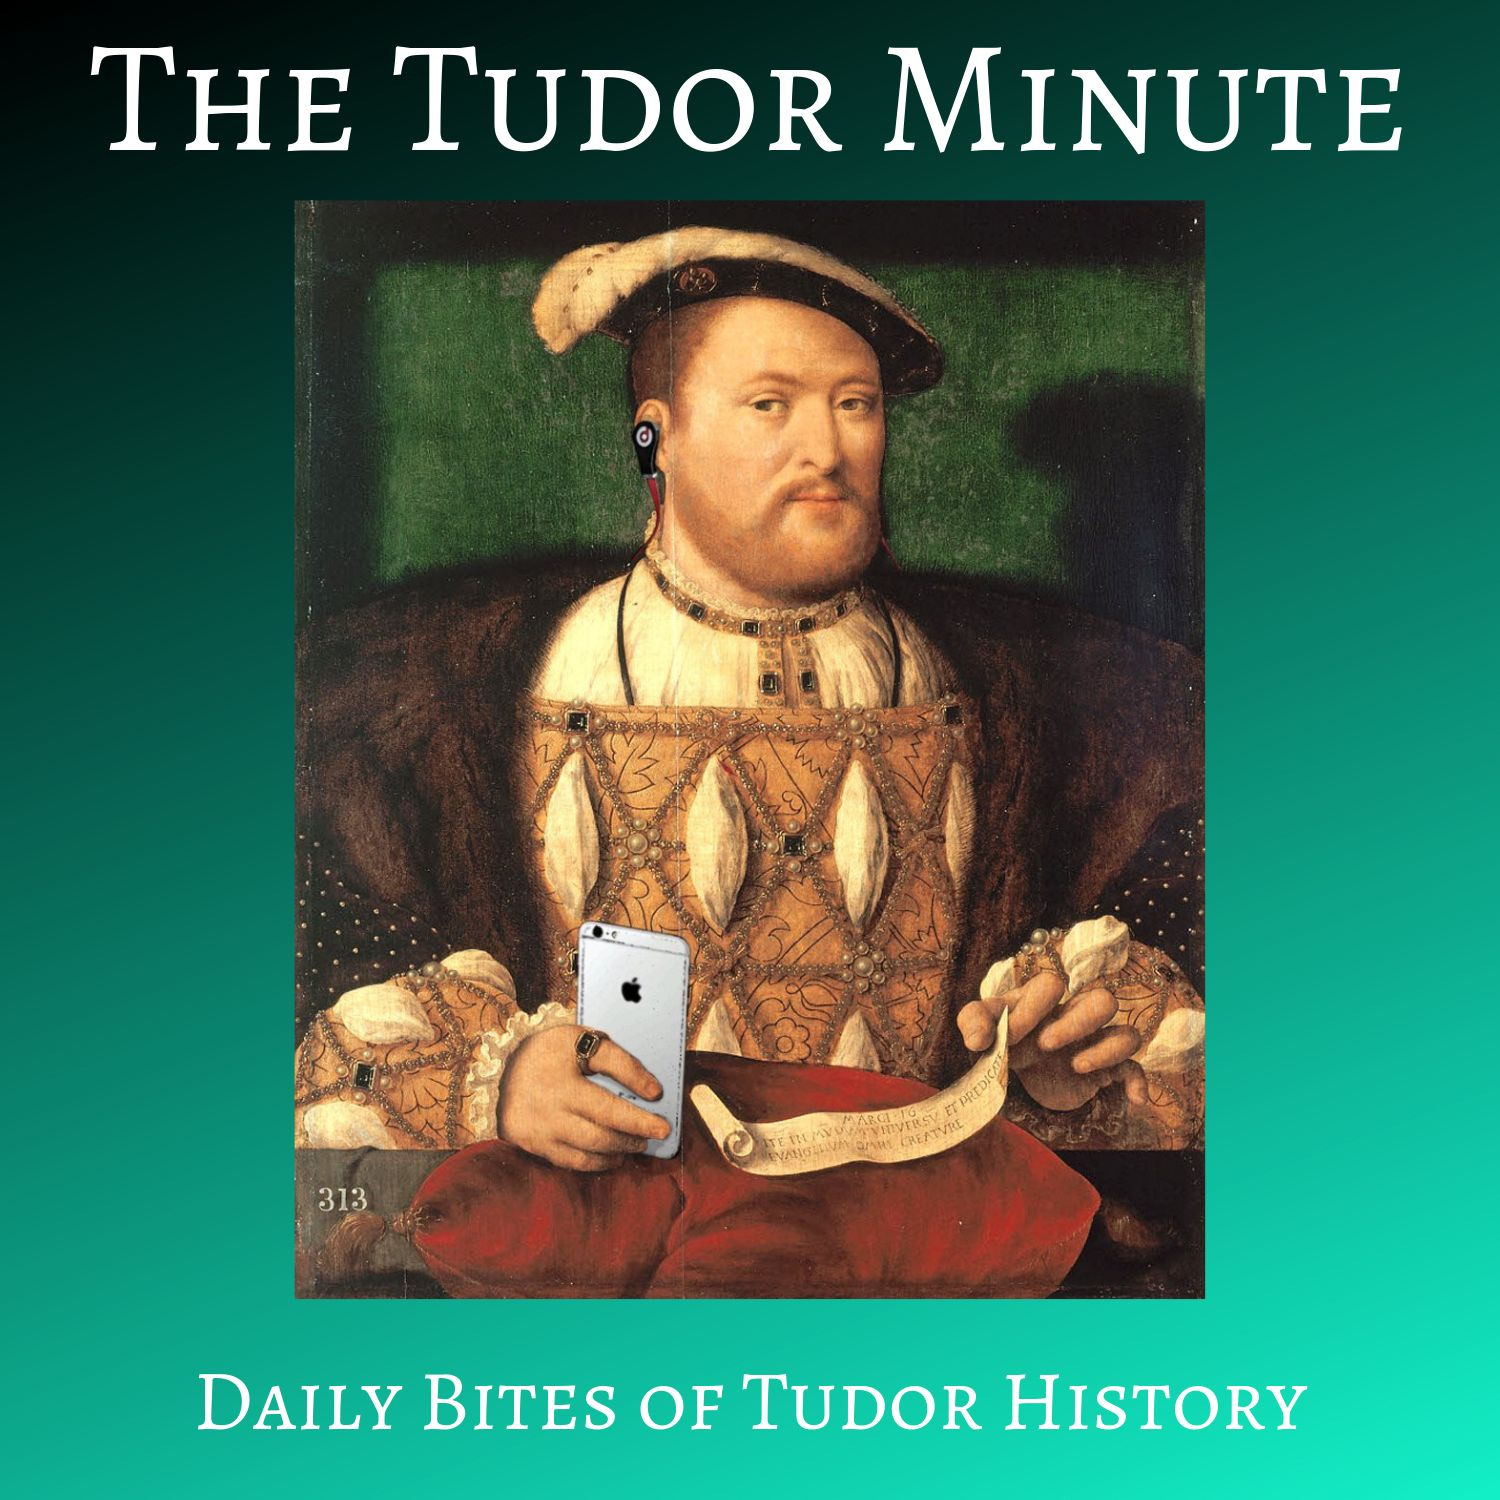 The Tudor Minute